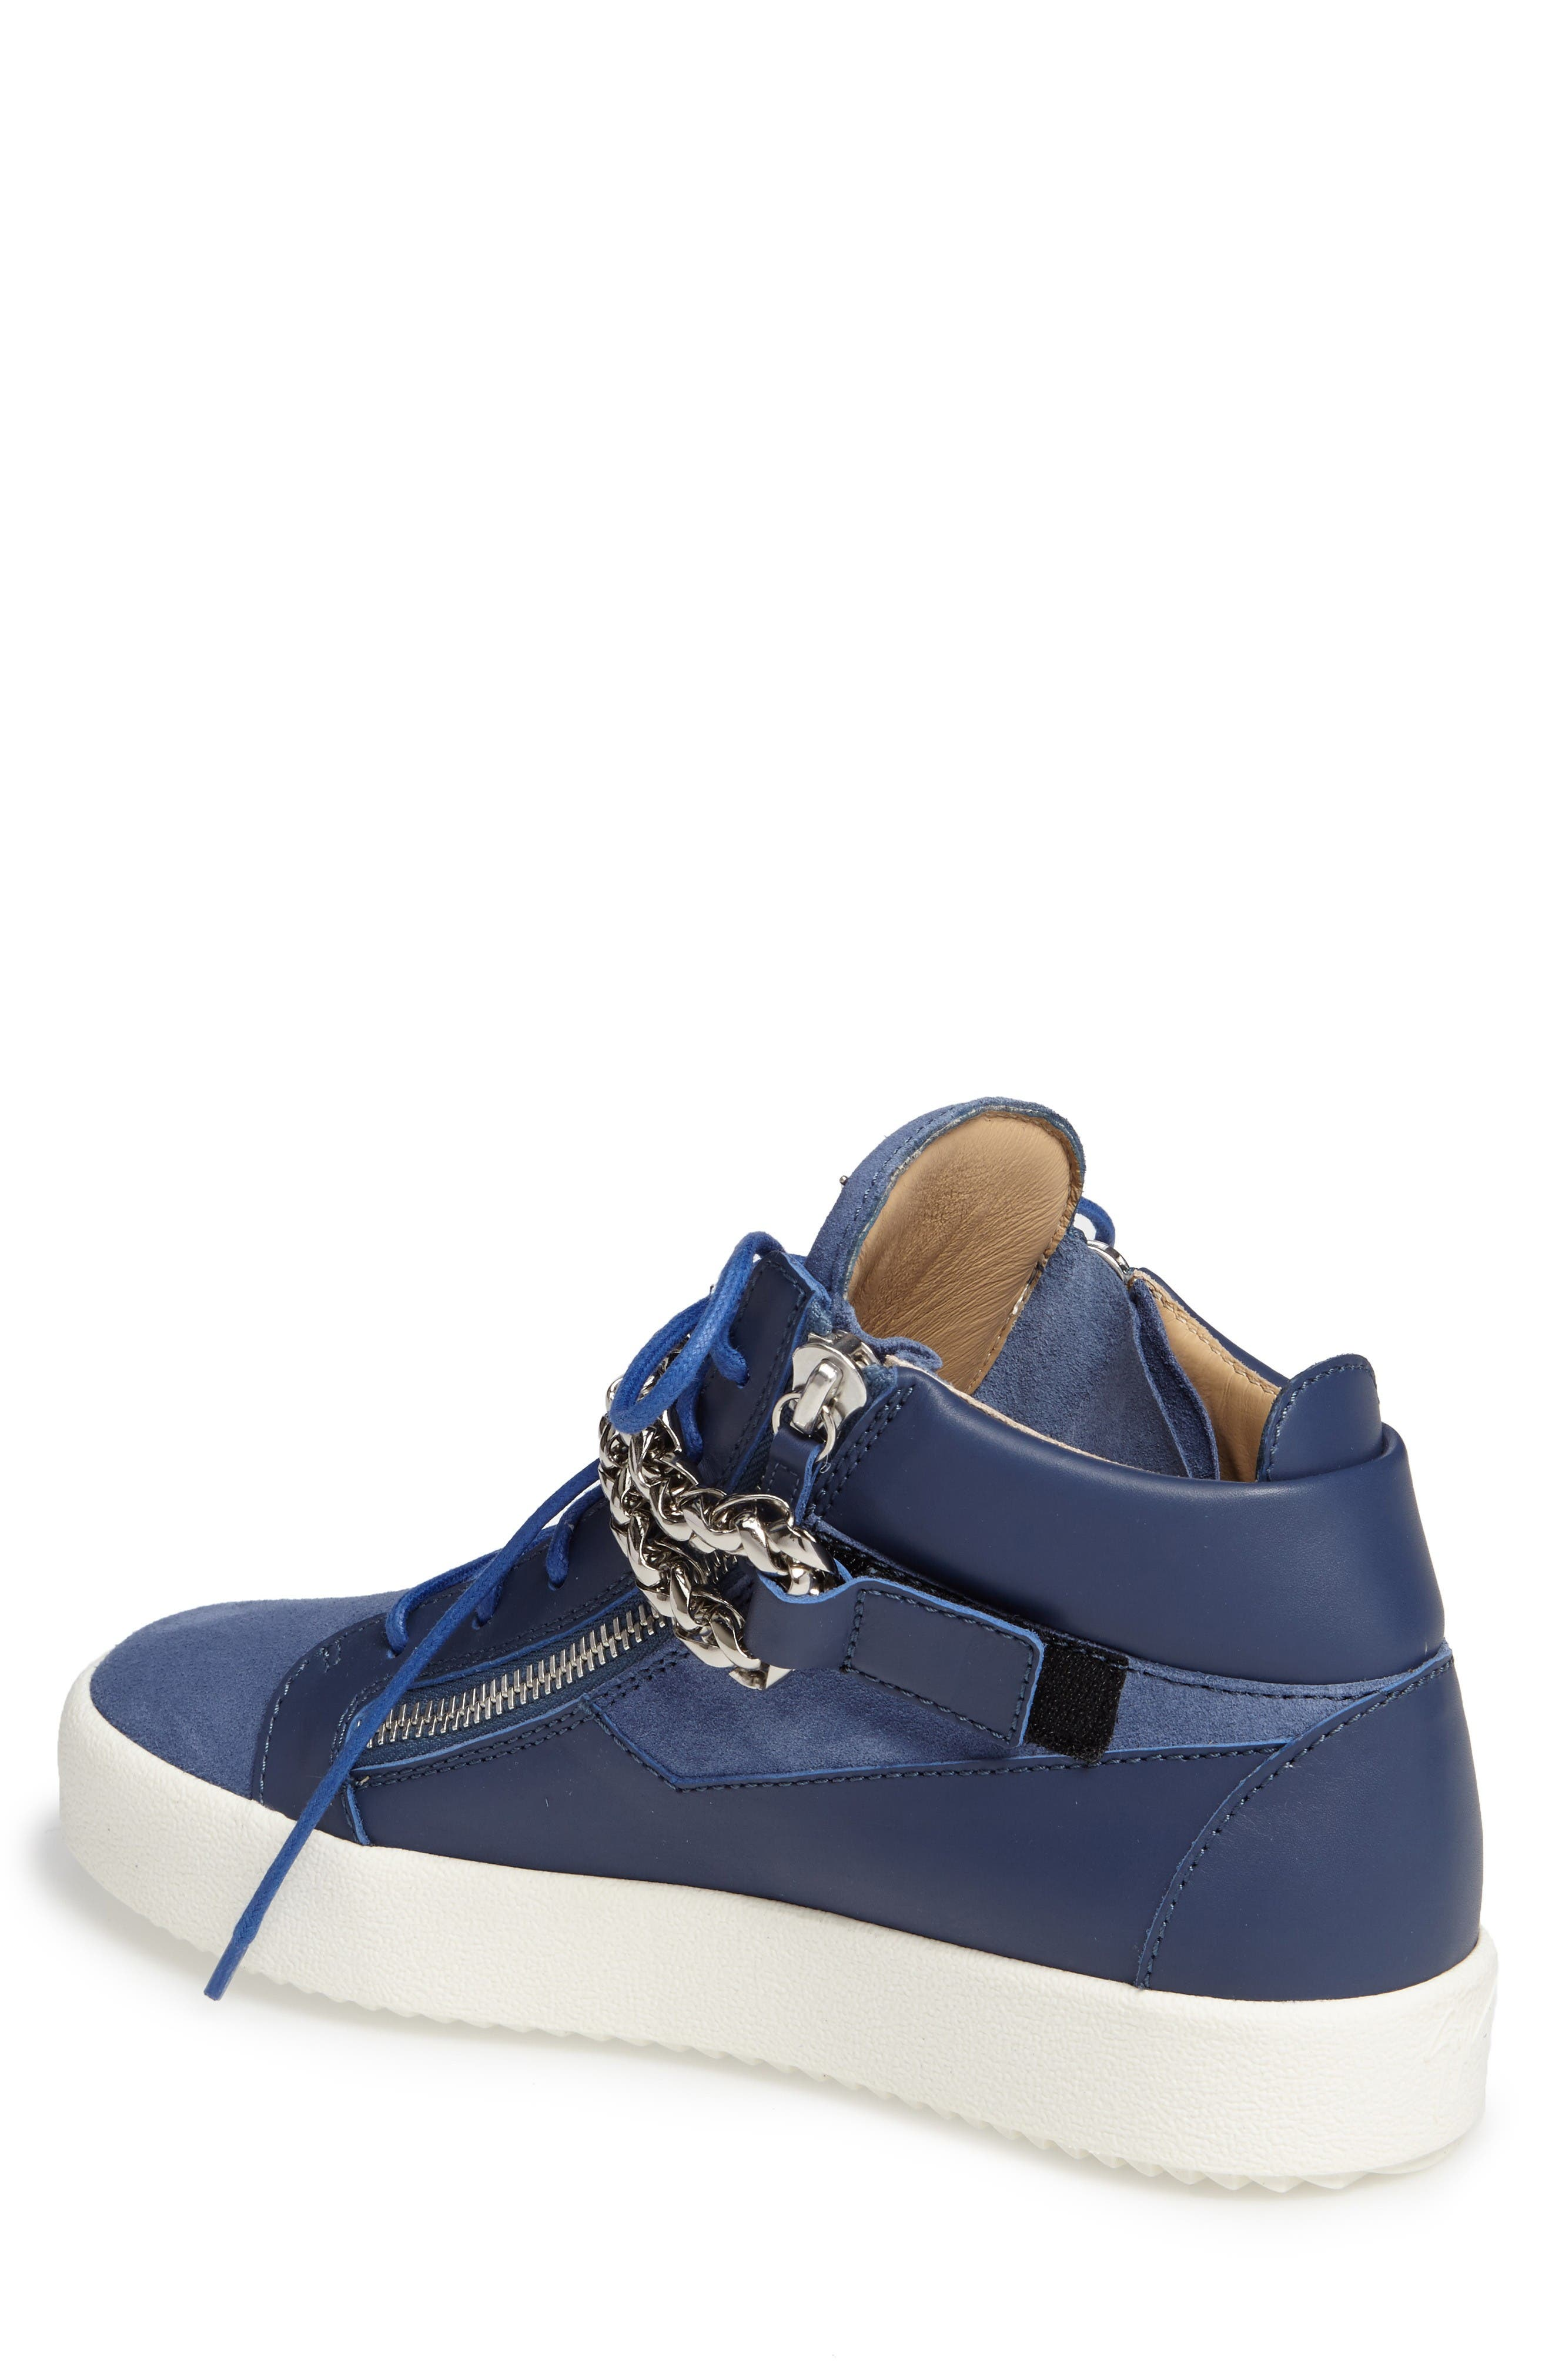 Chain Mid Top Sneaker,                             Alternate thumbnail 2, color,                             Blue Suede/ Leather